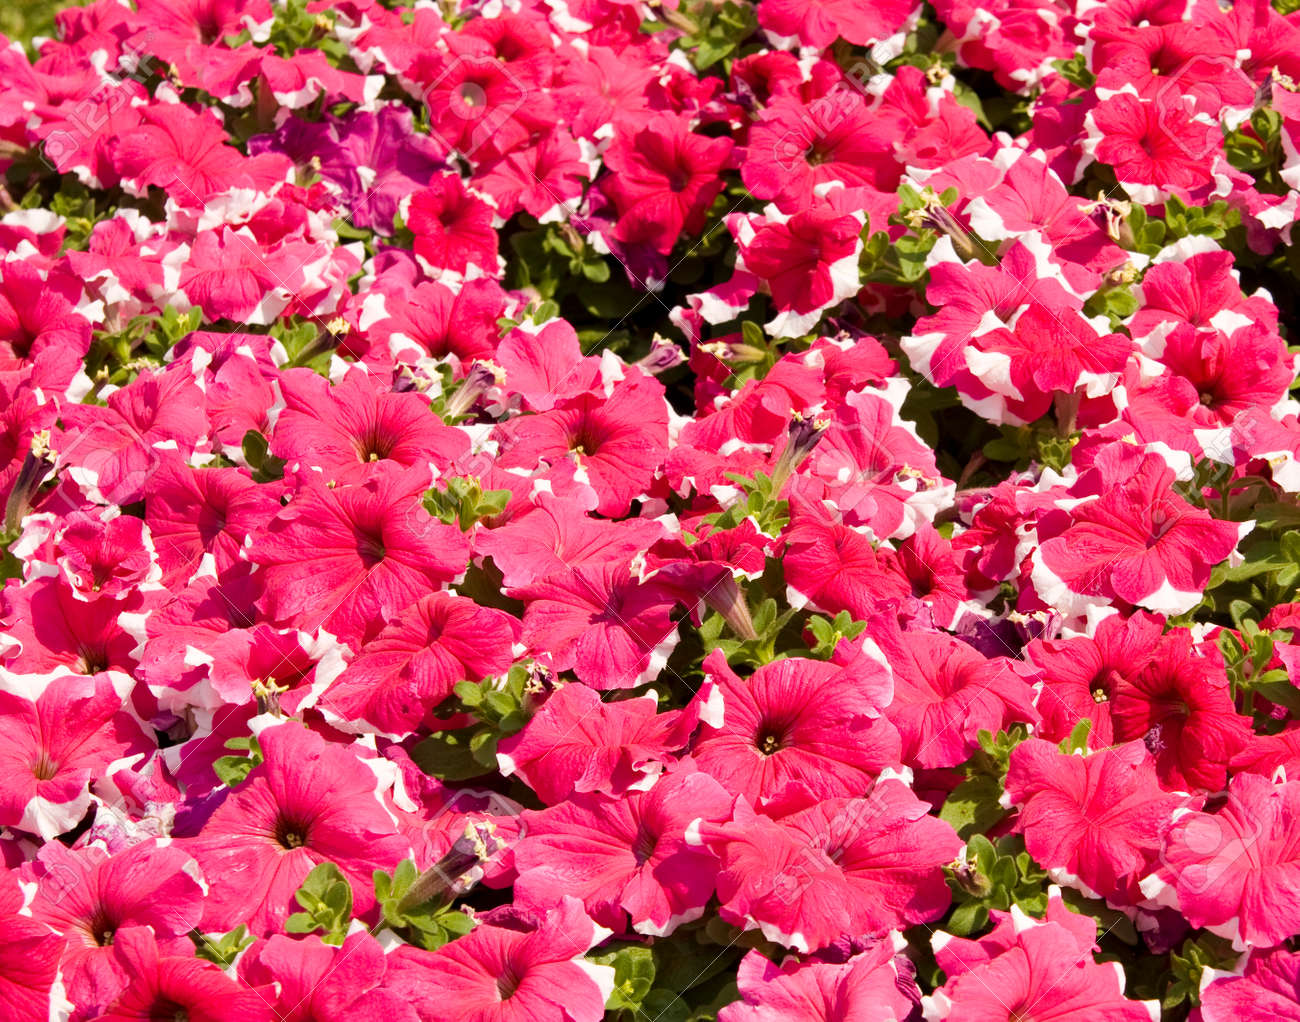 Flower Bed With Many Petunia Flowers Of Pink Color With White Stock Photo Picture And Royalty Free Image Image 51766487